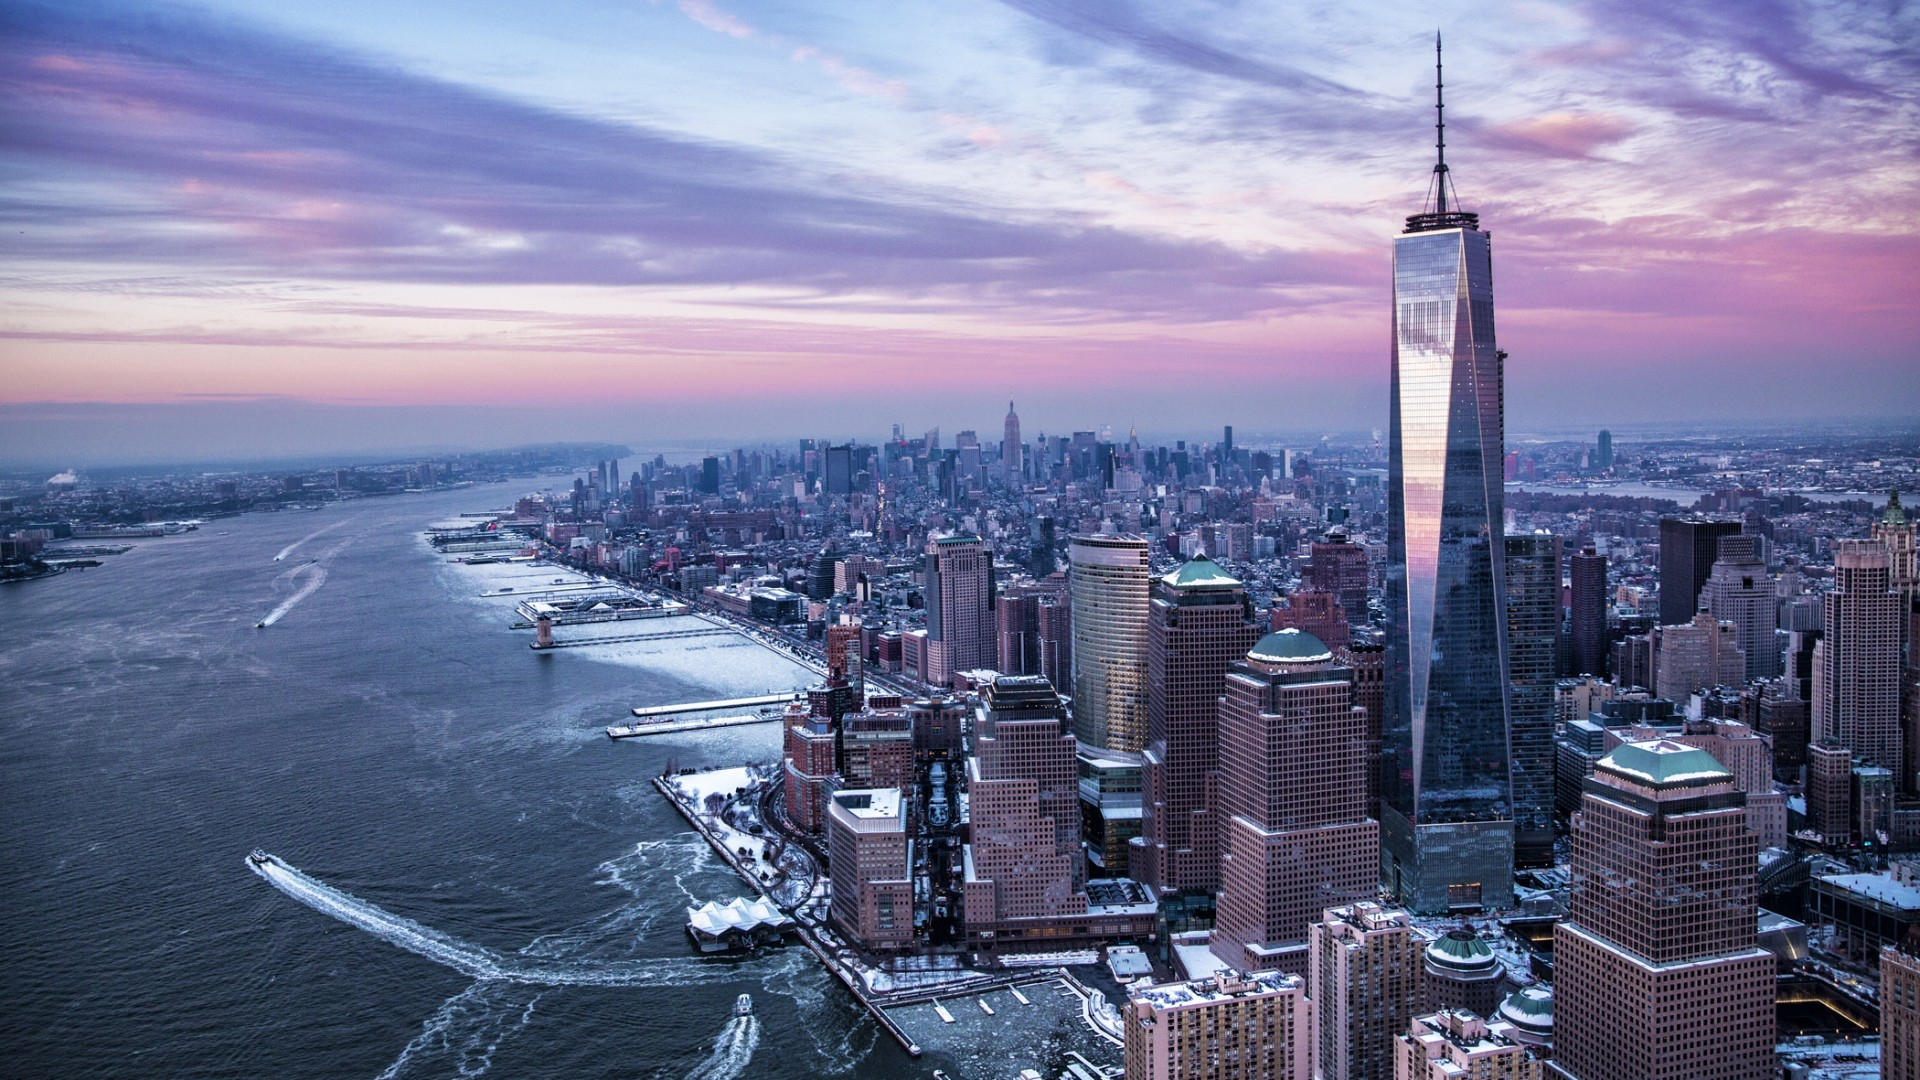 Res: 1920x1080, architecture building skyscraper new york city usa cityscape manhattan one world  trade center sunset clouds ship winter snow wallpaper and background